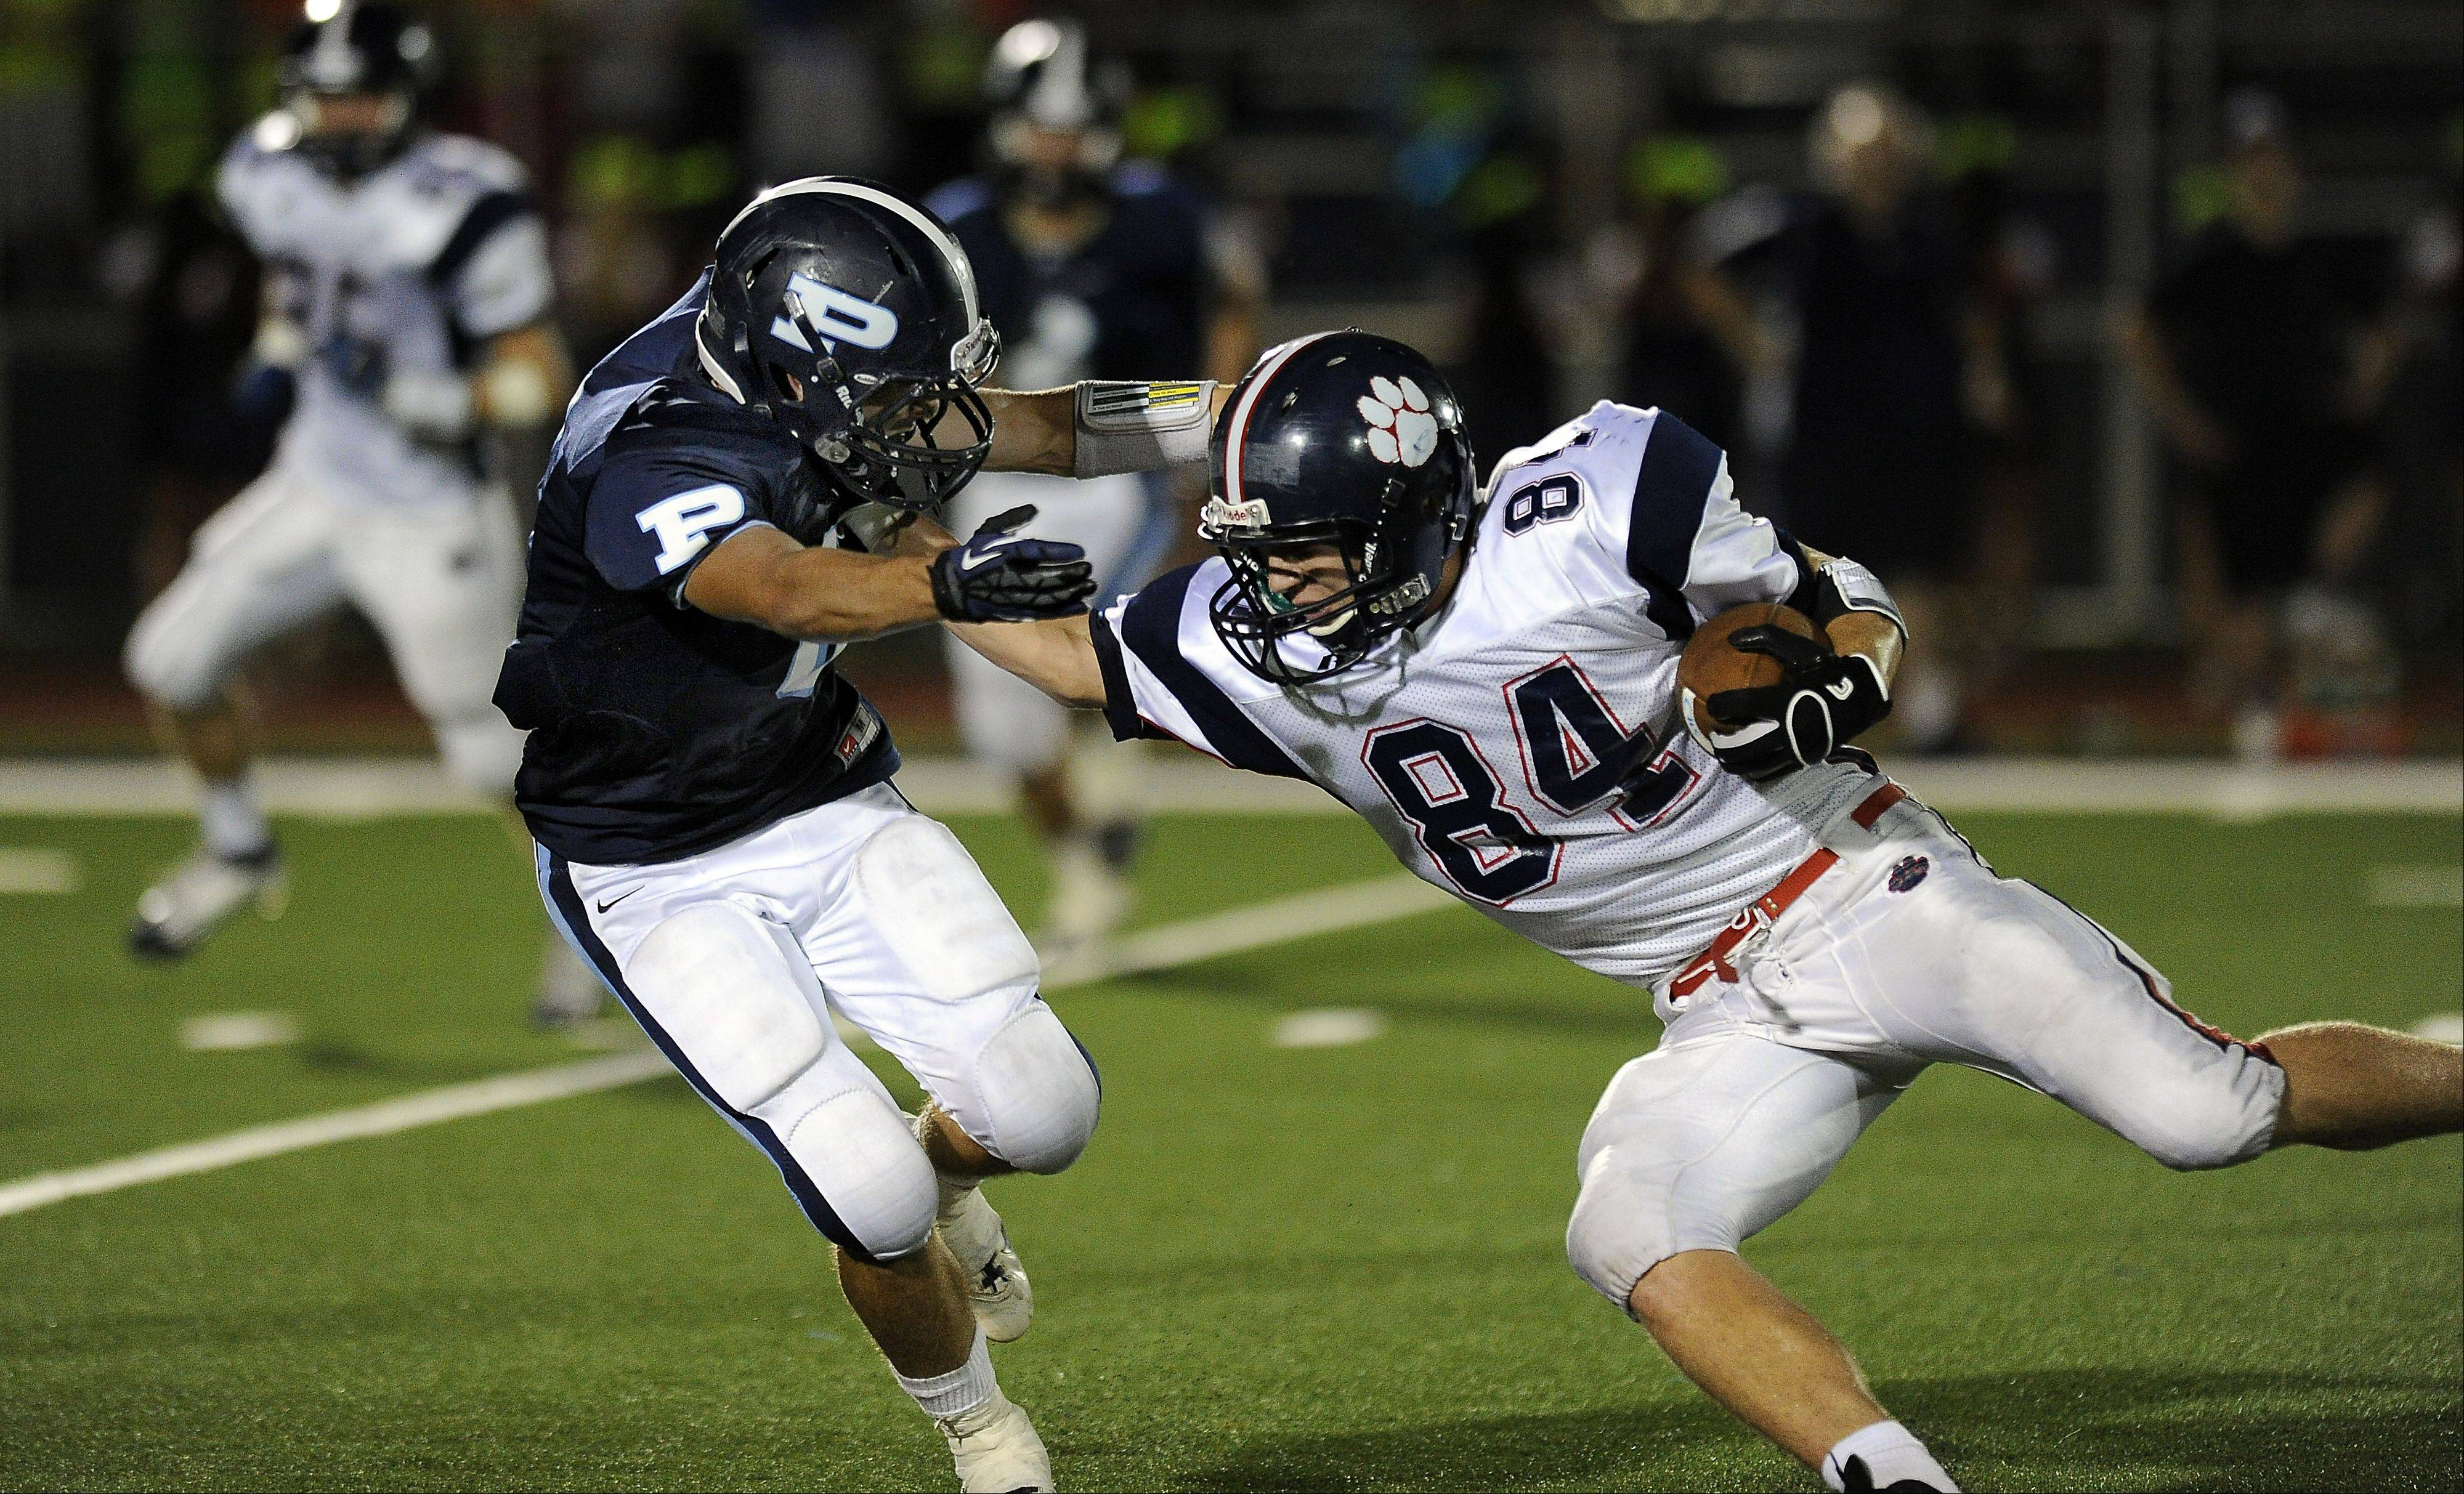 Conant's Tim Manczko turns a pass play into a 21-yard gain as Prospect's Eric Garmoe tries to stop him in the second quarter .